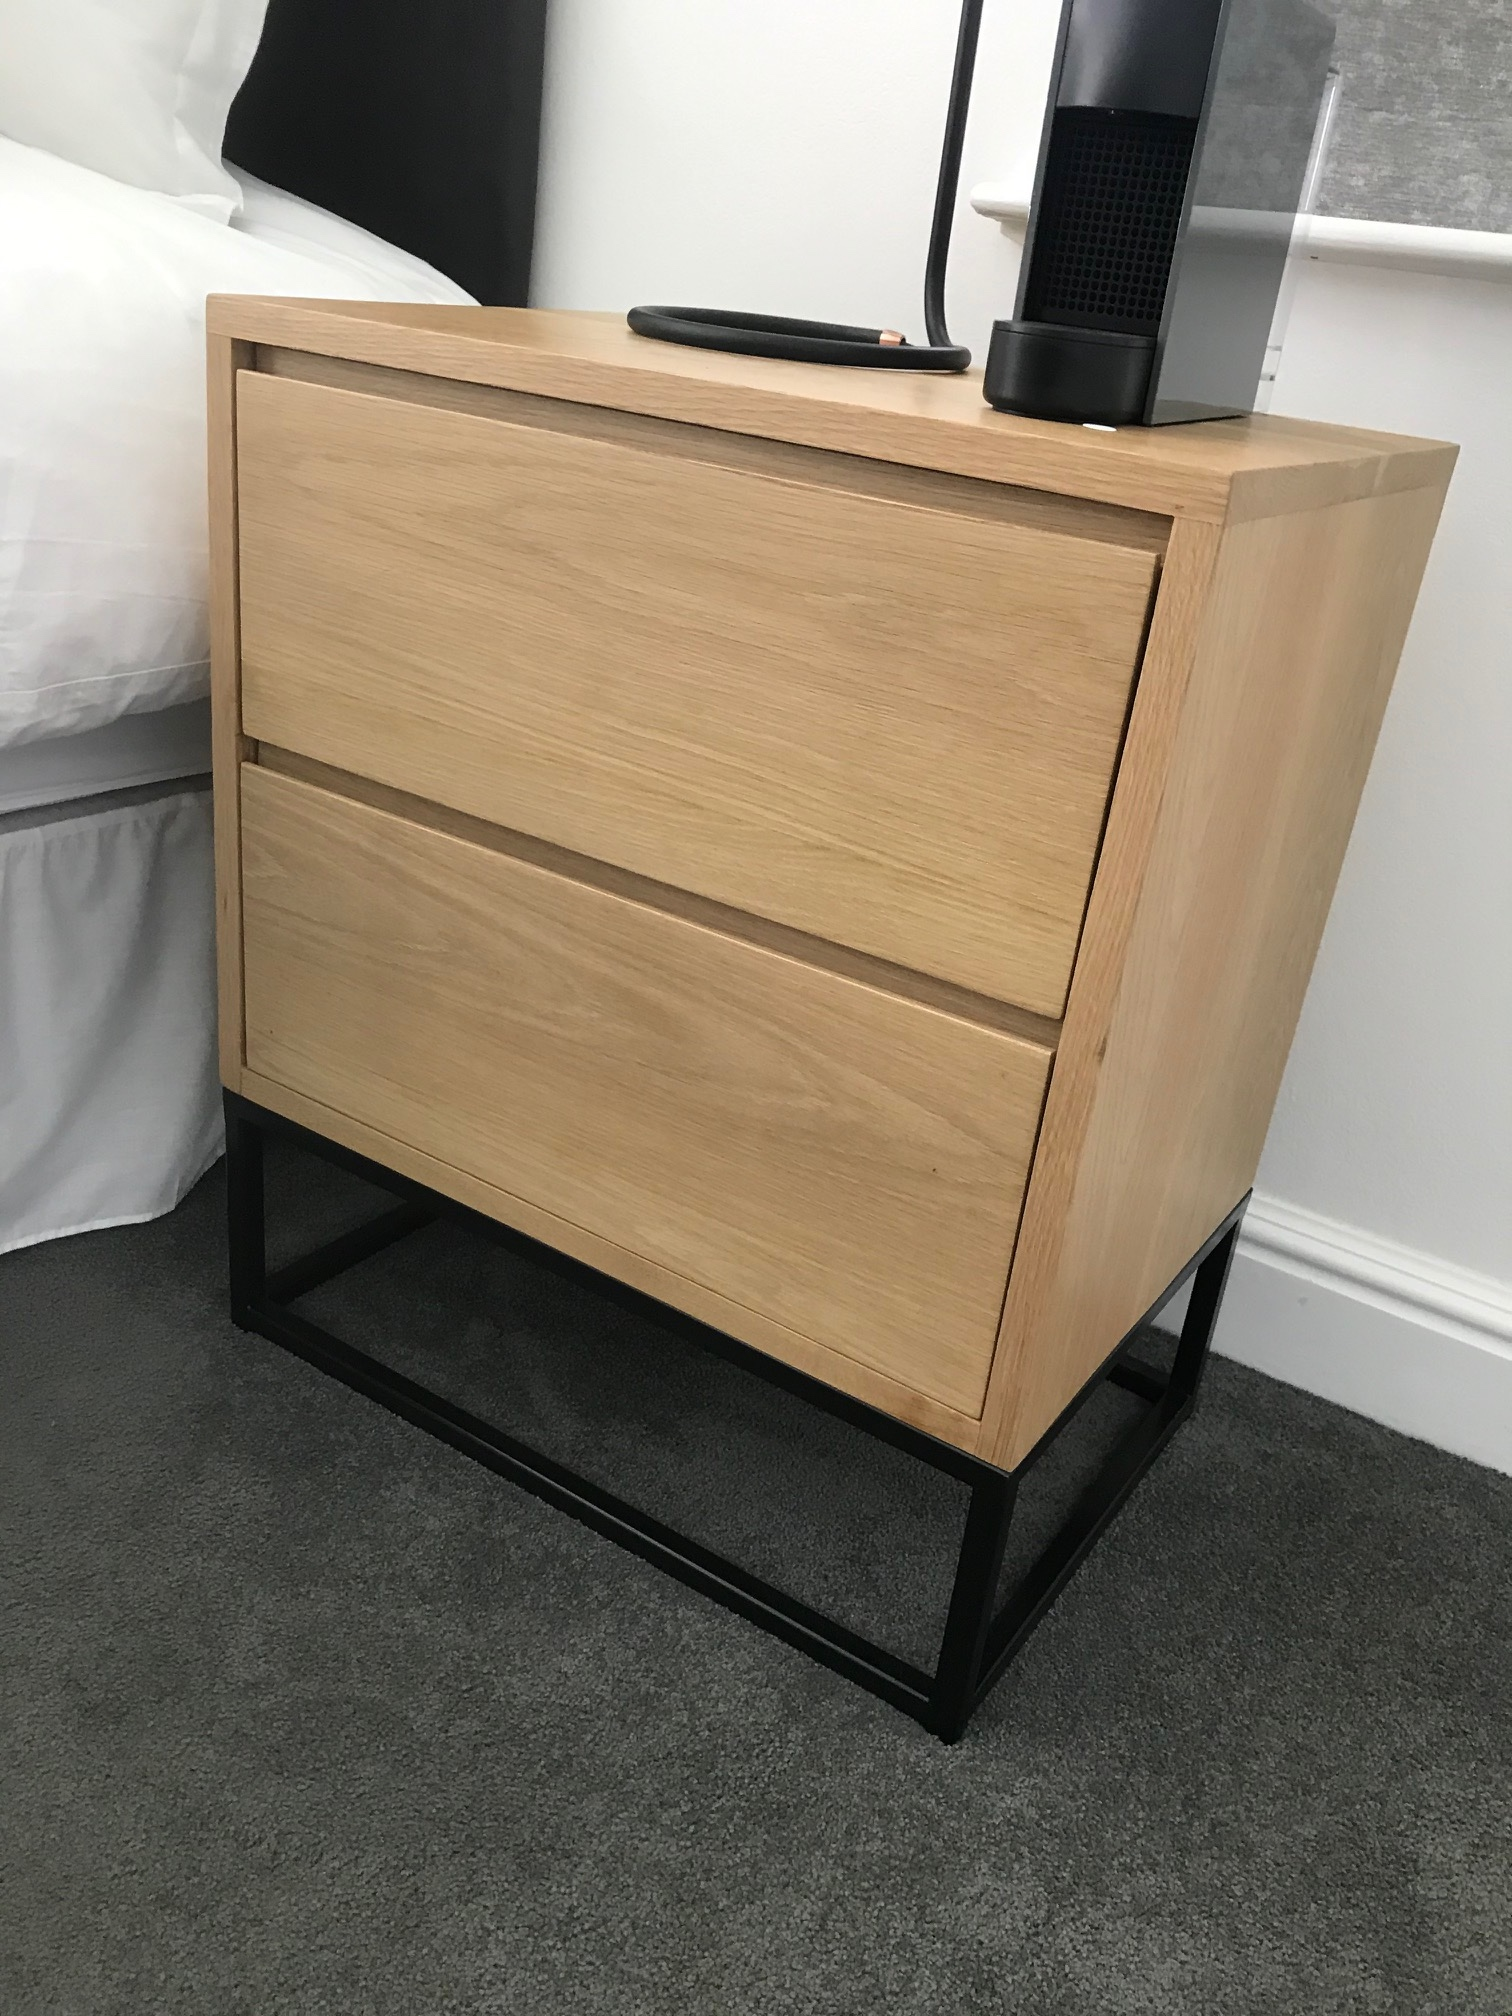 Bedside tables or pedestals